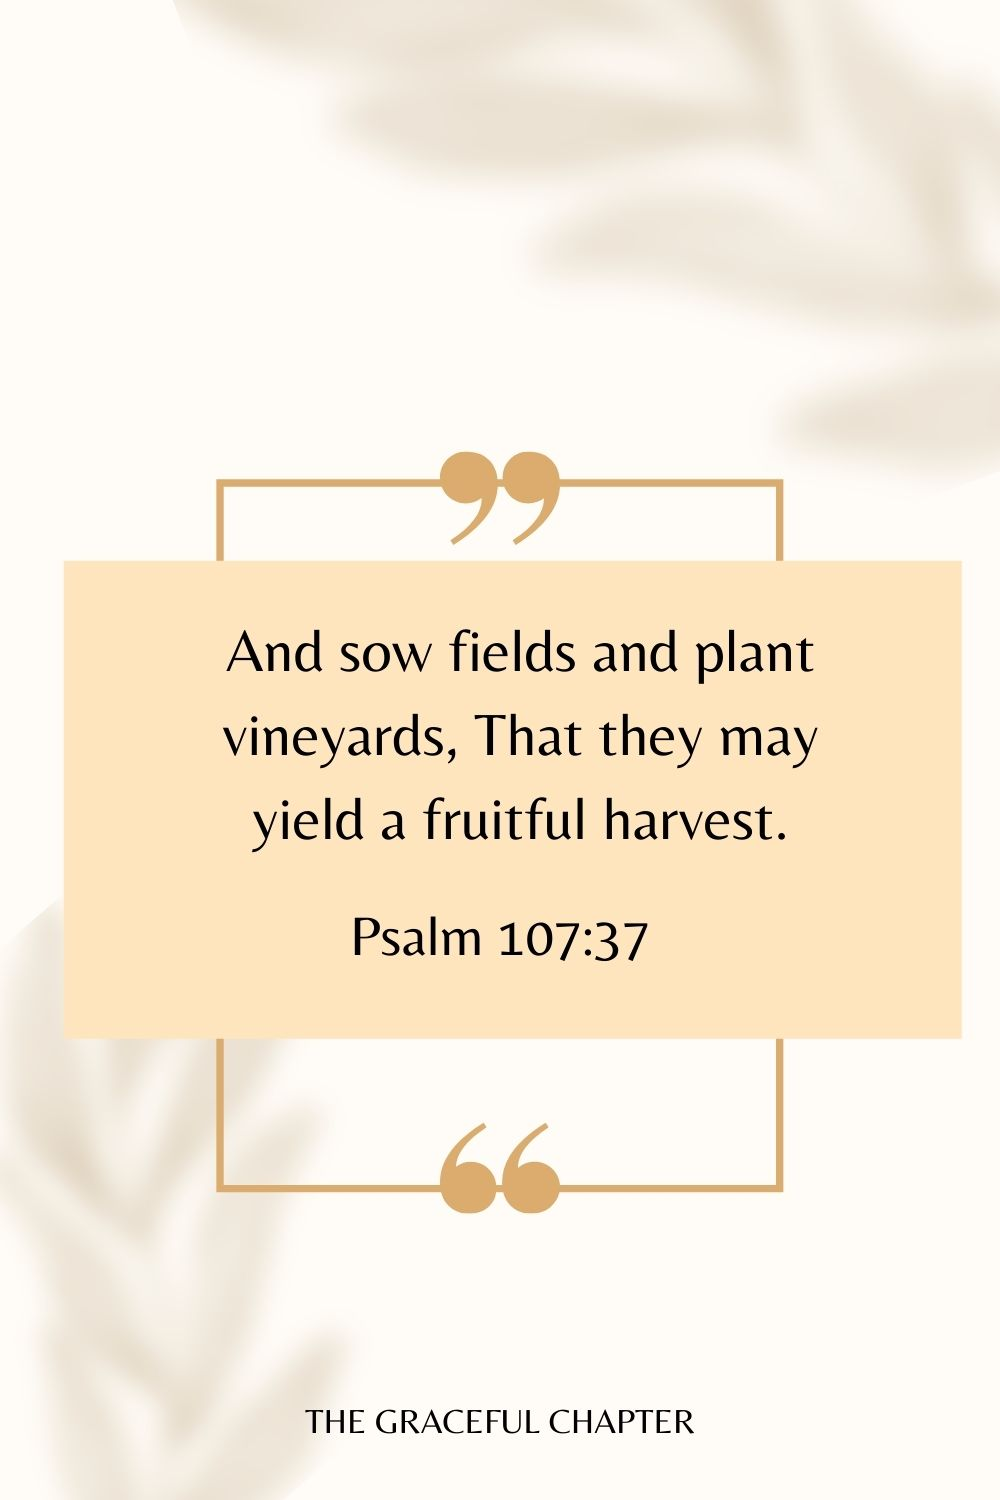 And sow fields and plant vineyards, That they may yield a fruitful harvest. Psalm 107:37